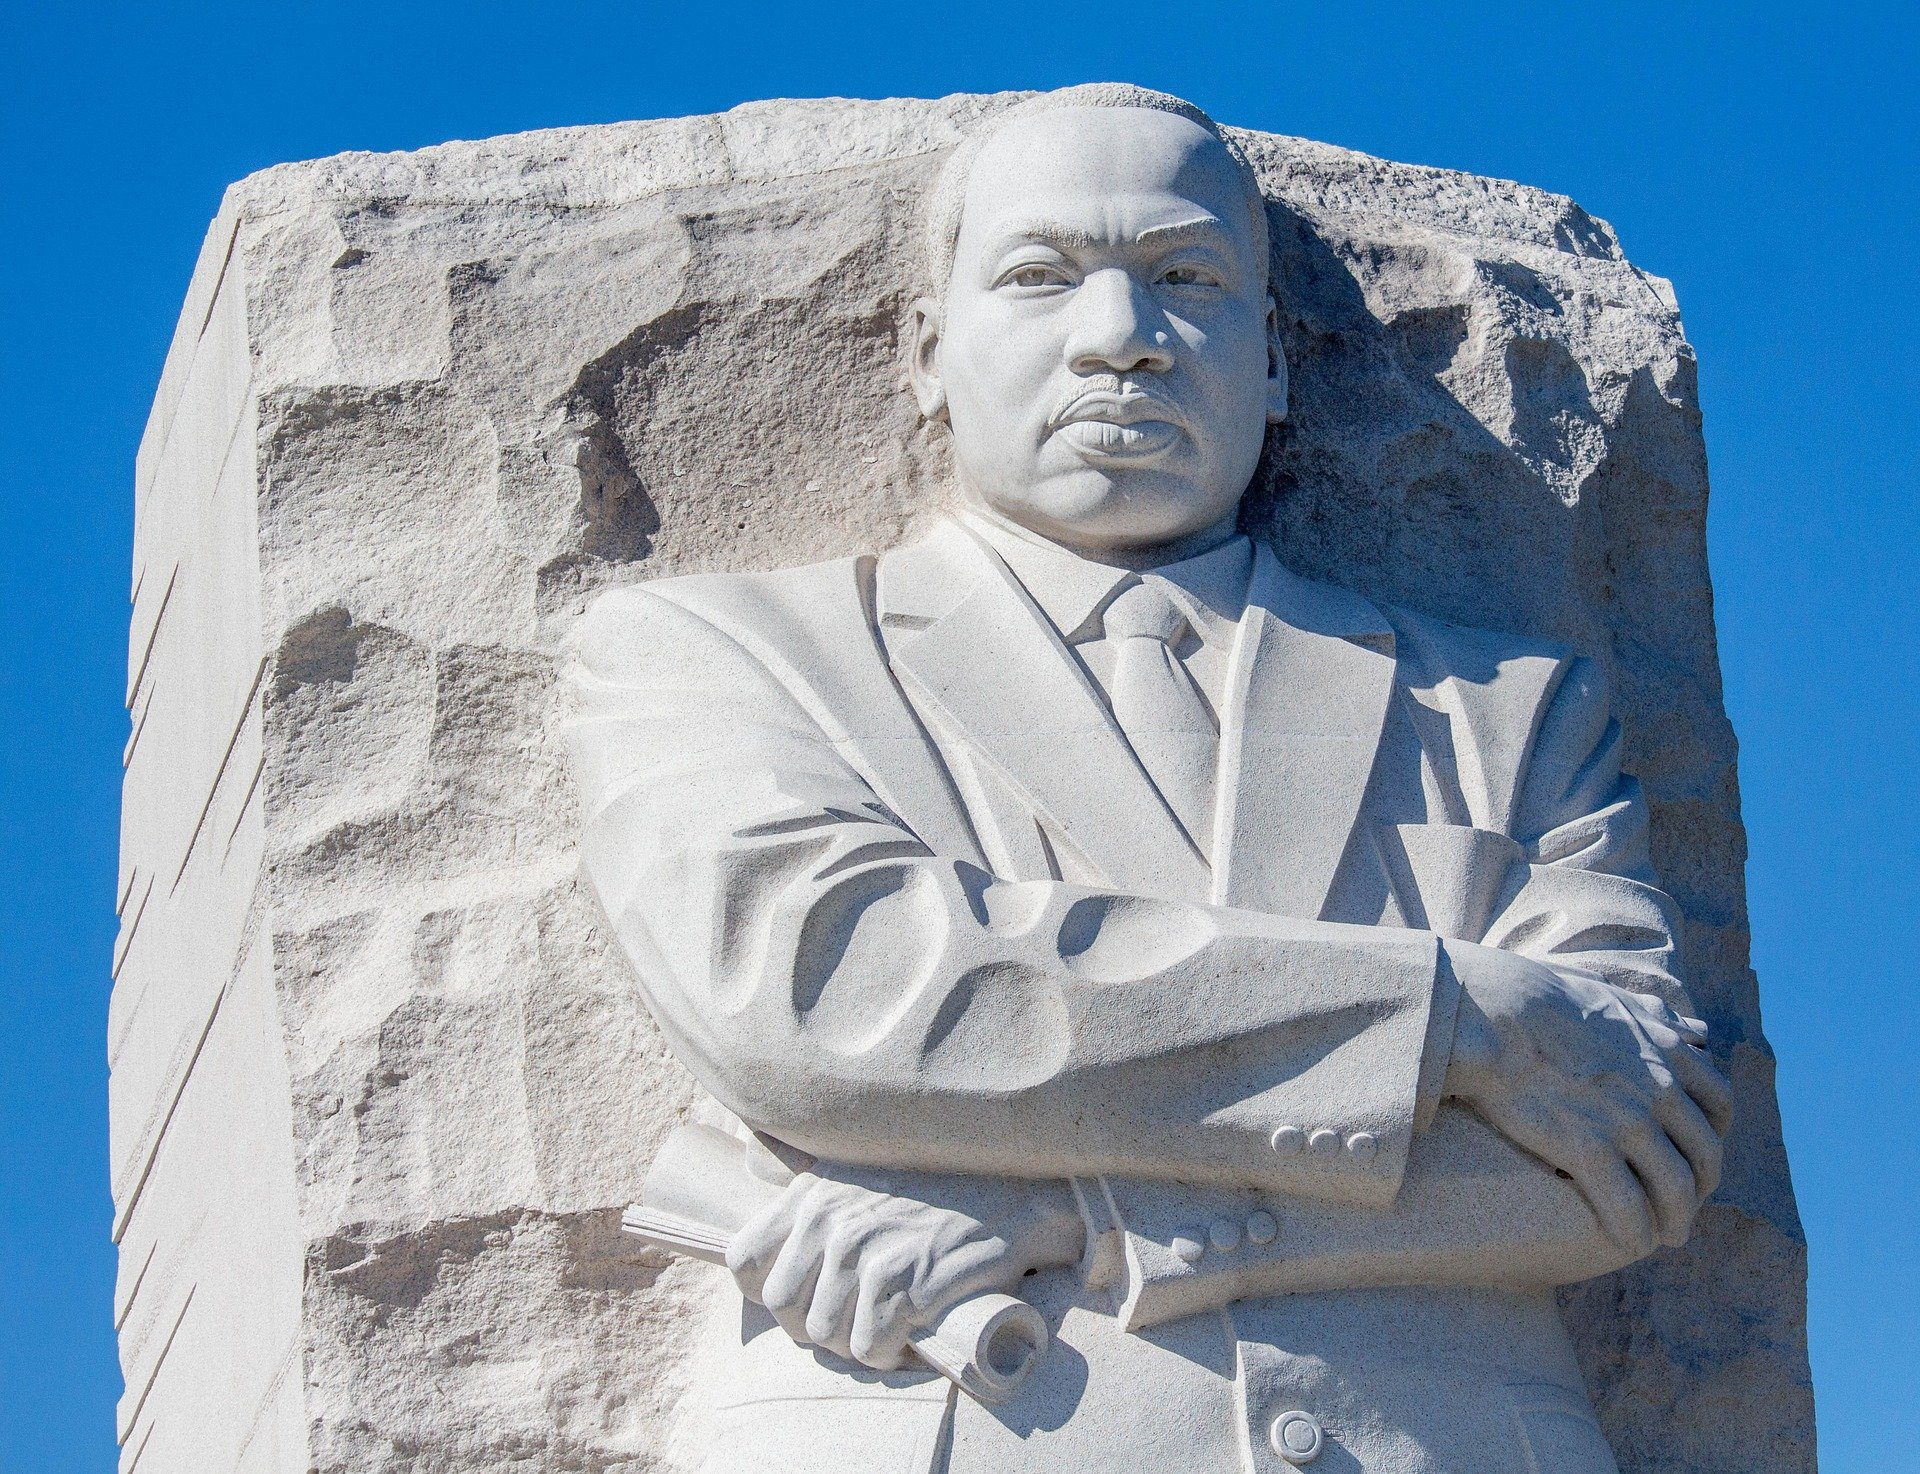 Pastors and Dr. Martin Luther King Jr's Nonviolence